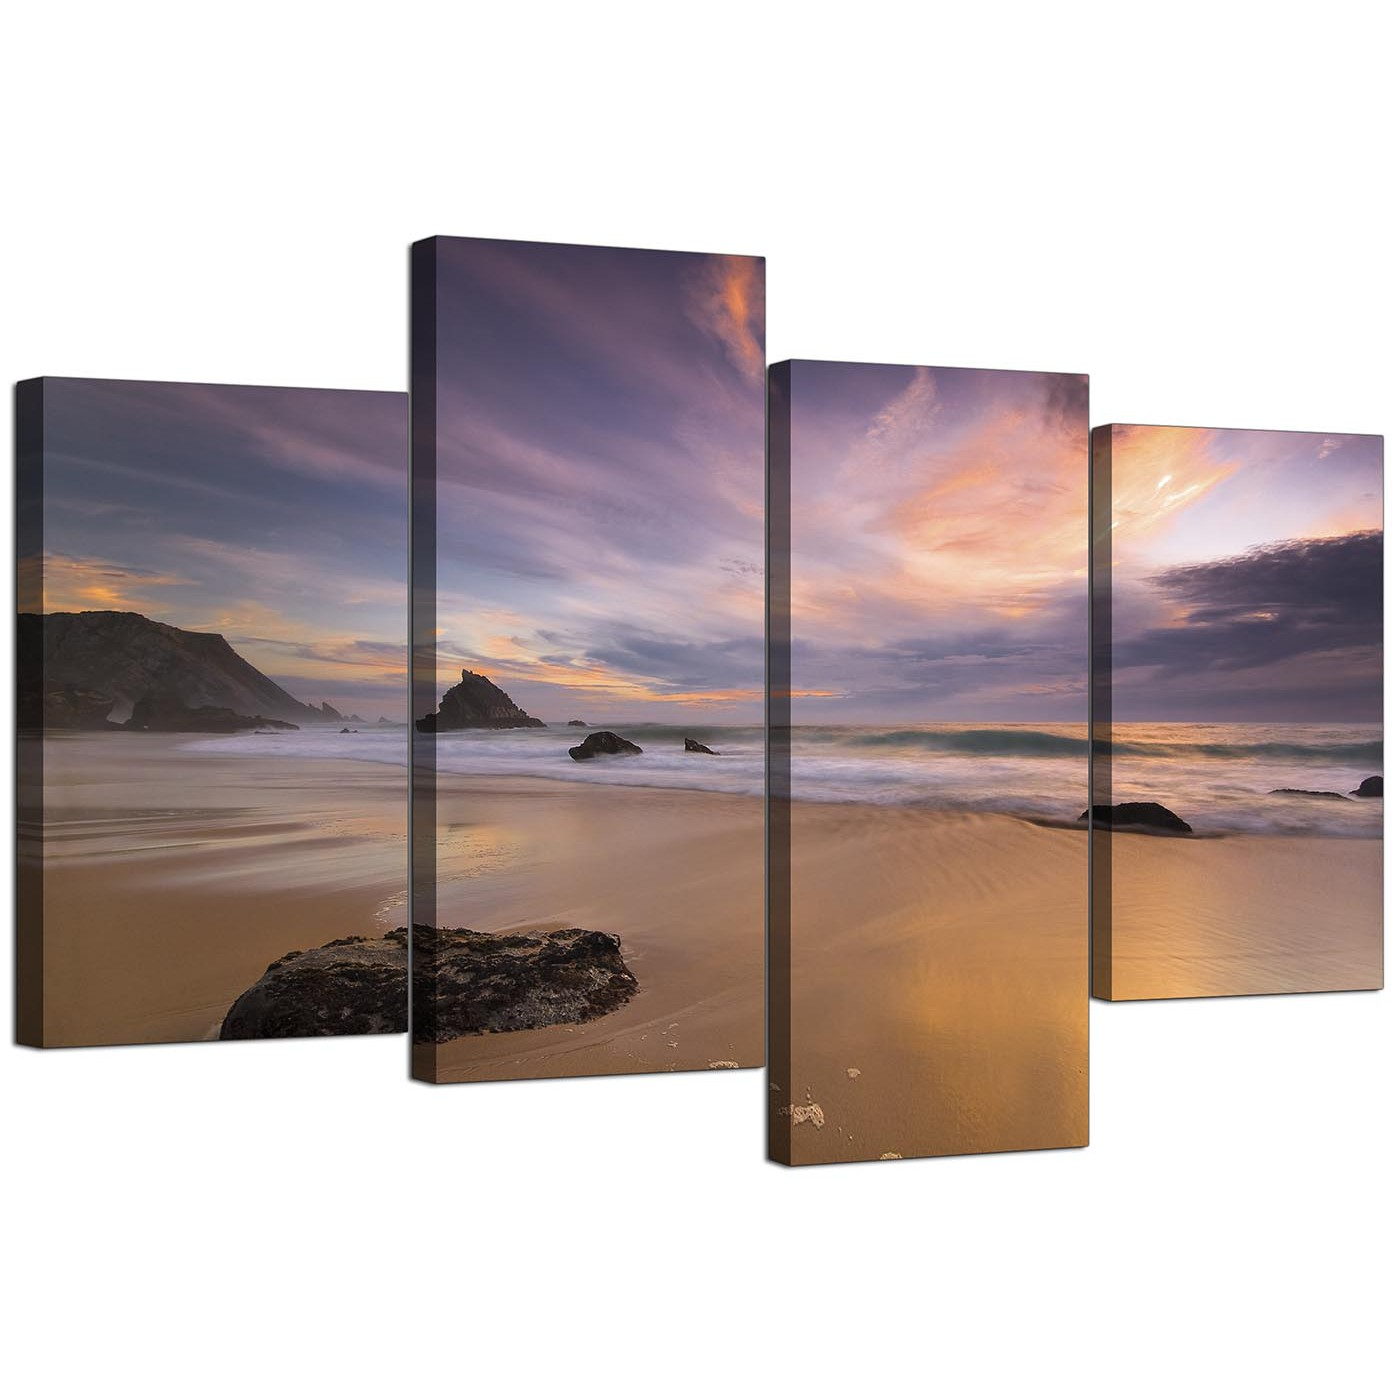 Canvas prints of a beach sunset for your kitchen 4 panel for Cheap canvas prints for sale